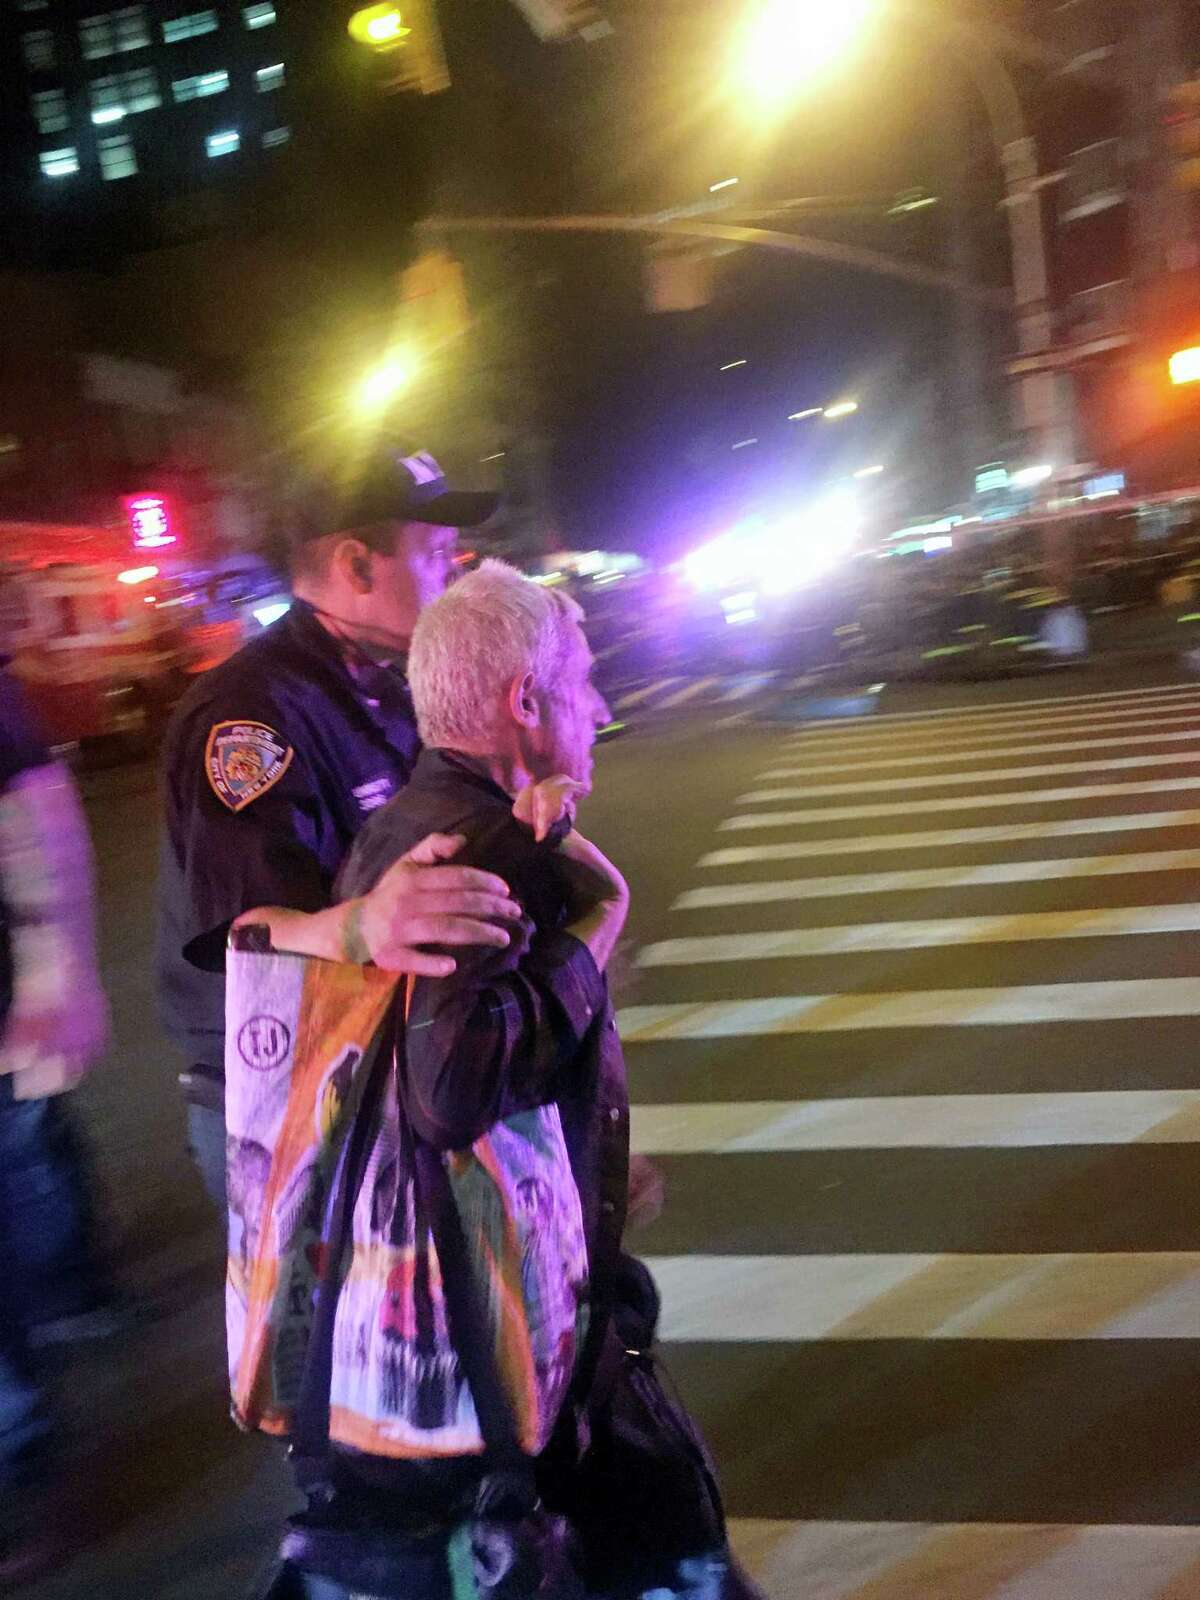 A police officer escorts an injured man away from the scene of a possible explosion on West 23rd Street in New York. Authorities said dozens suffered minor injuries.